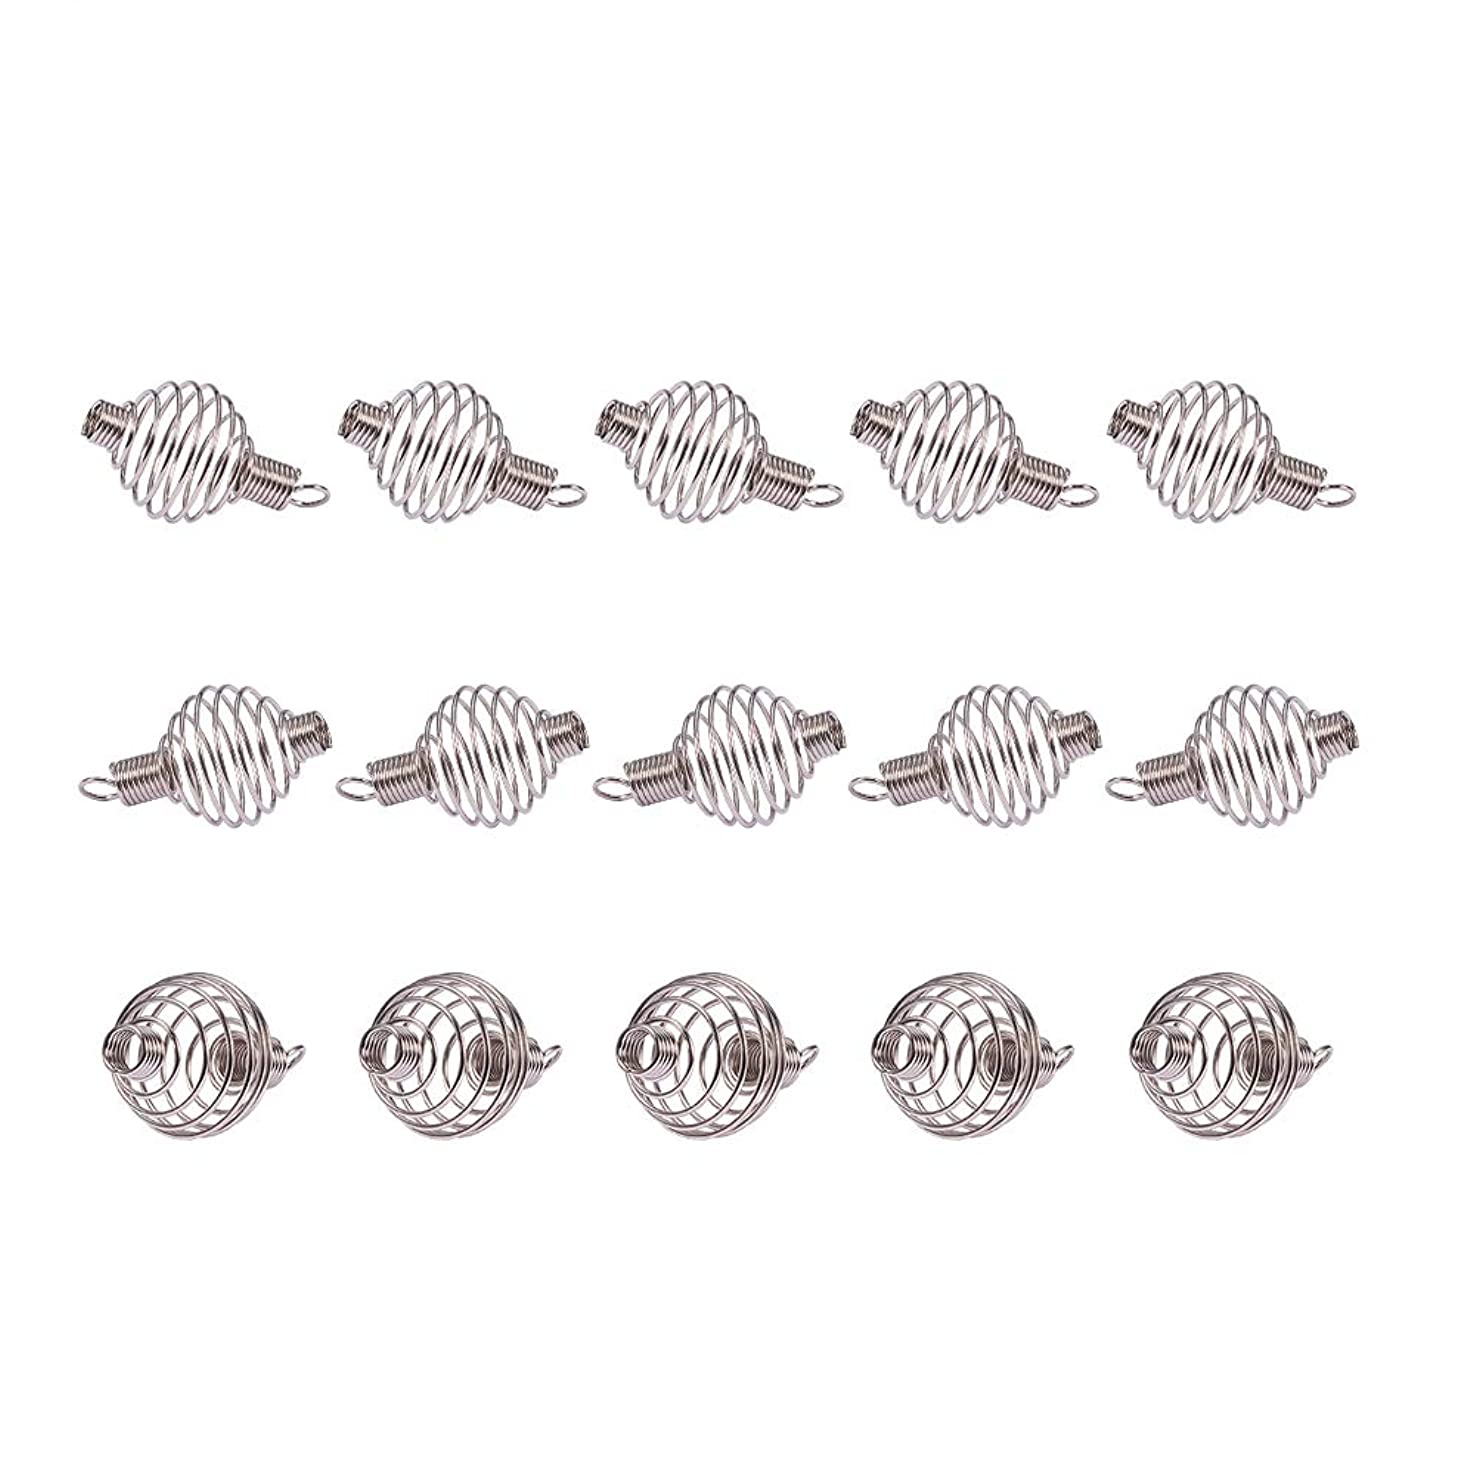 PandaHall Elite 15Pcs Stainless Steel Spiral Round Bead Cages Size 34x19mm in a Box for Pendants Making